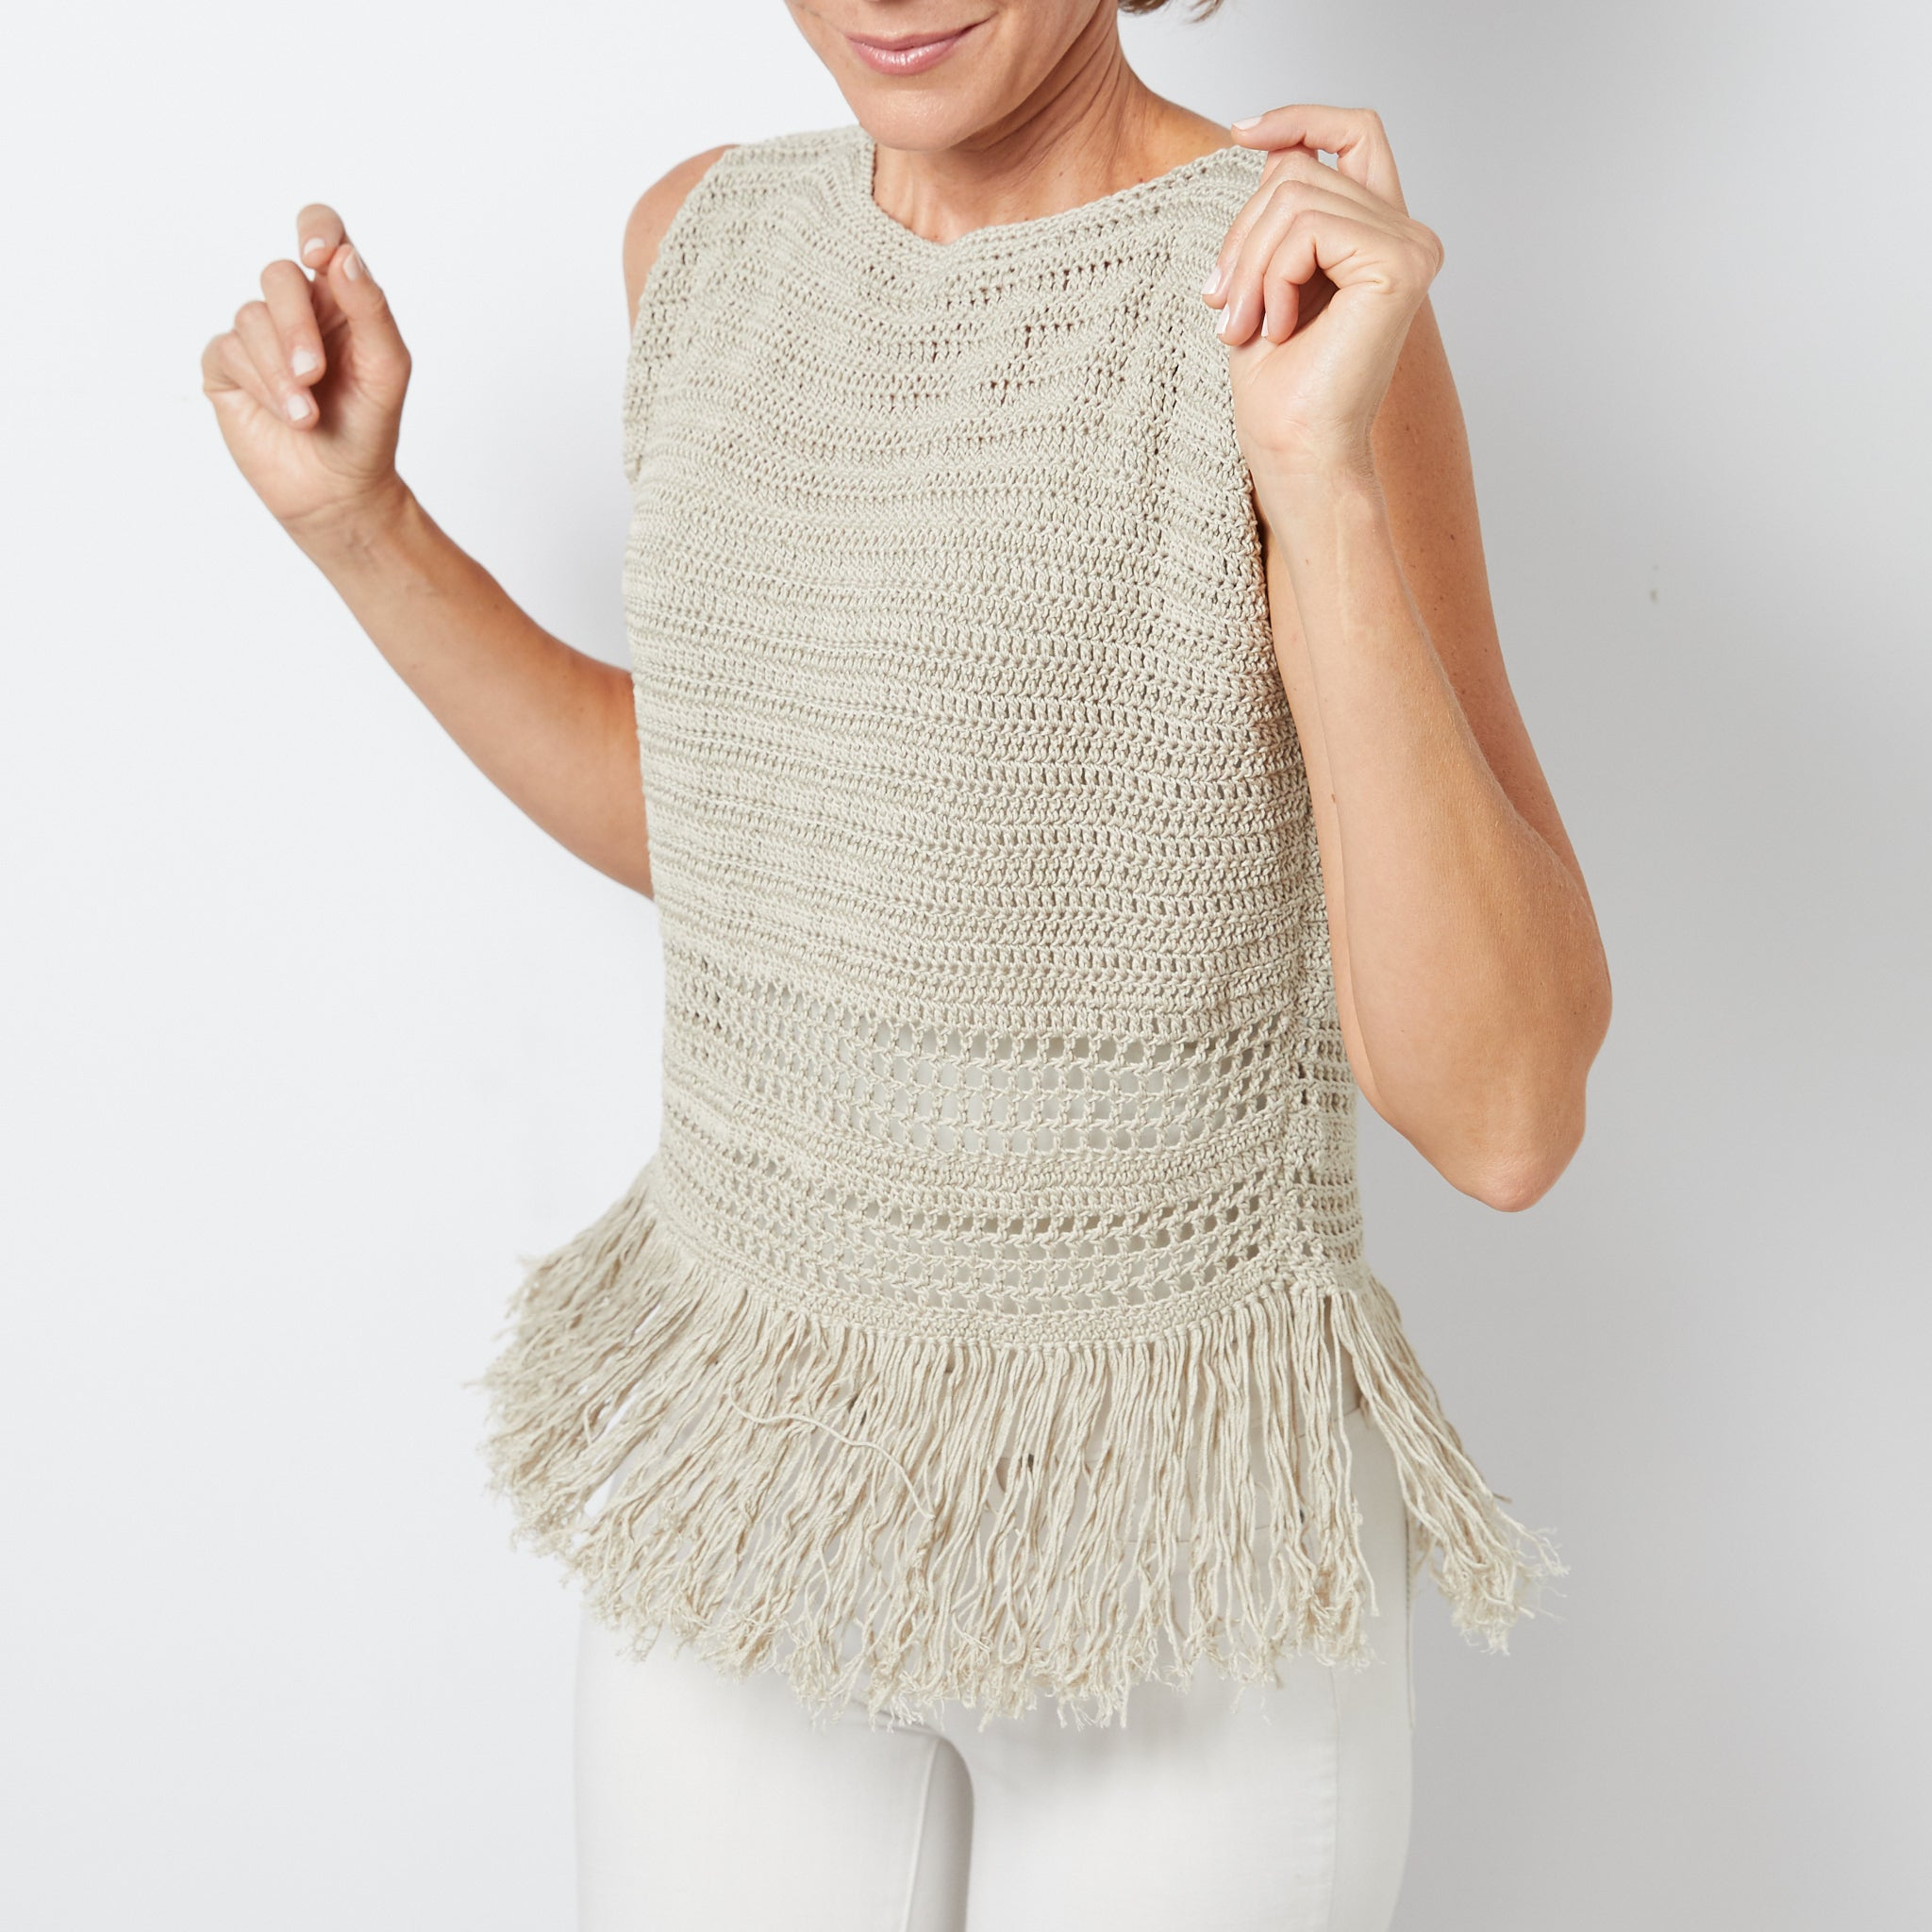 Fringe Tank Top Crochet Pattern